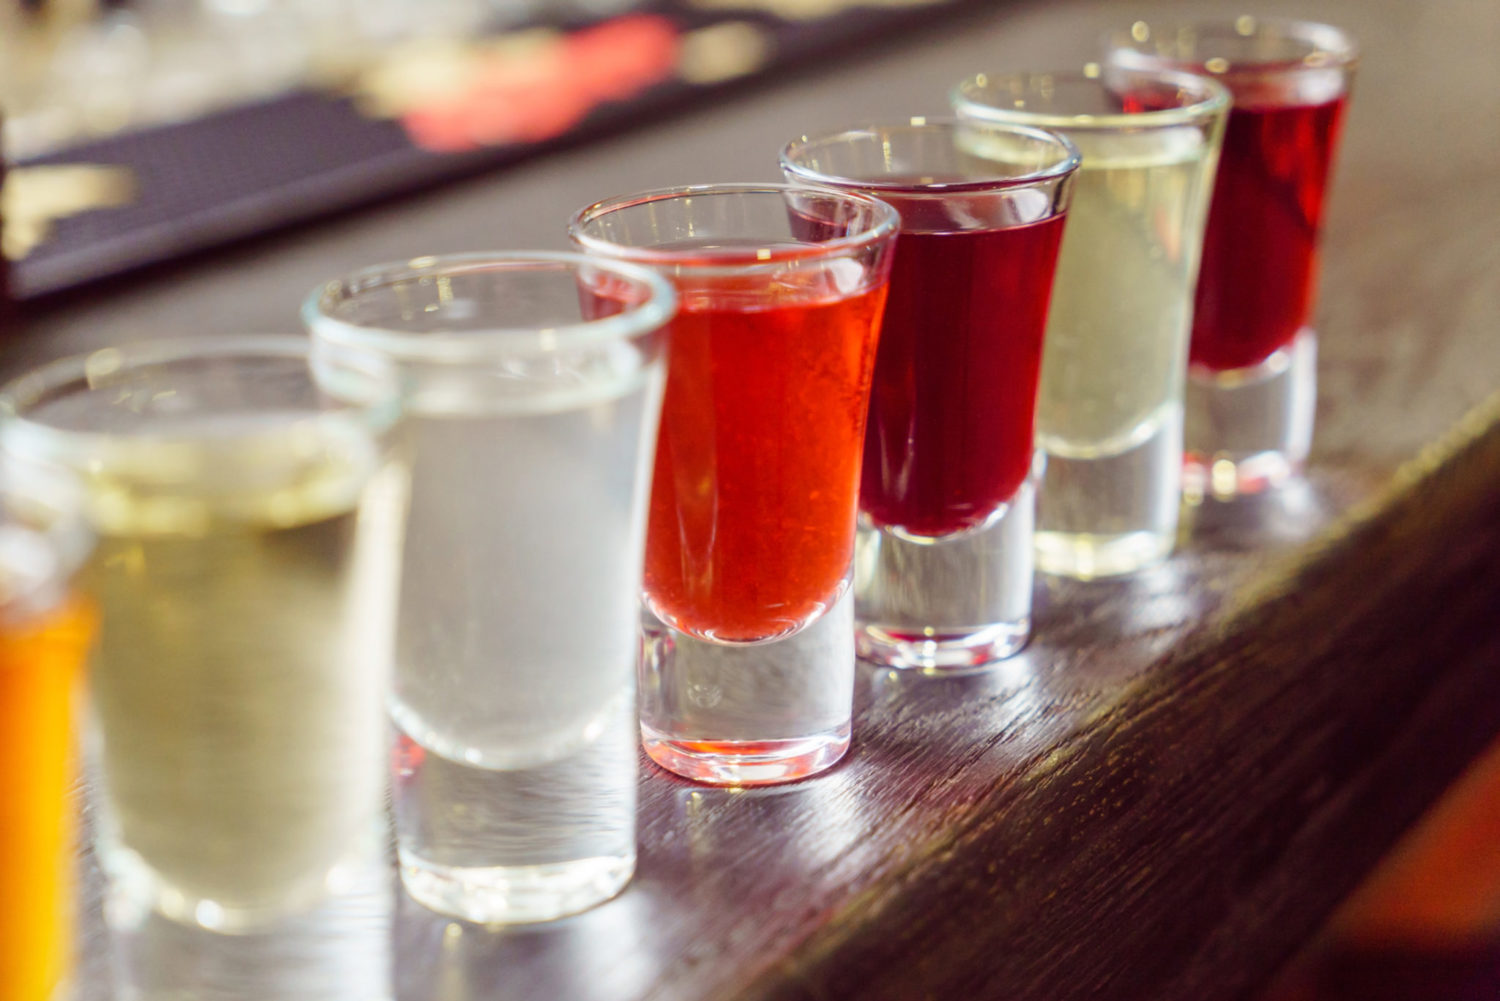 How Long Does Alcohol Last? Can It Go Bad?